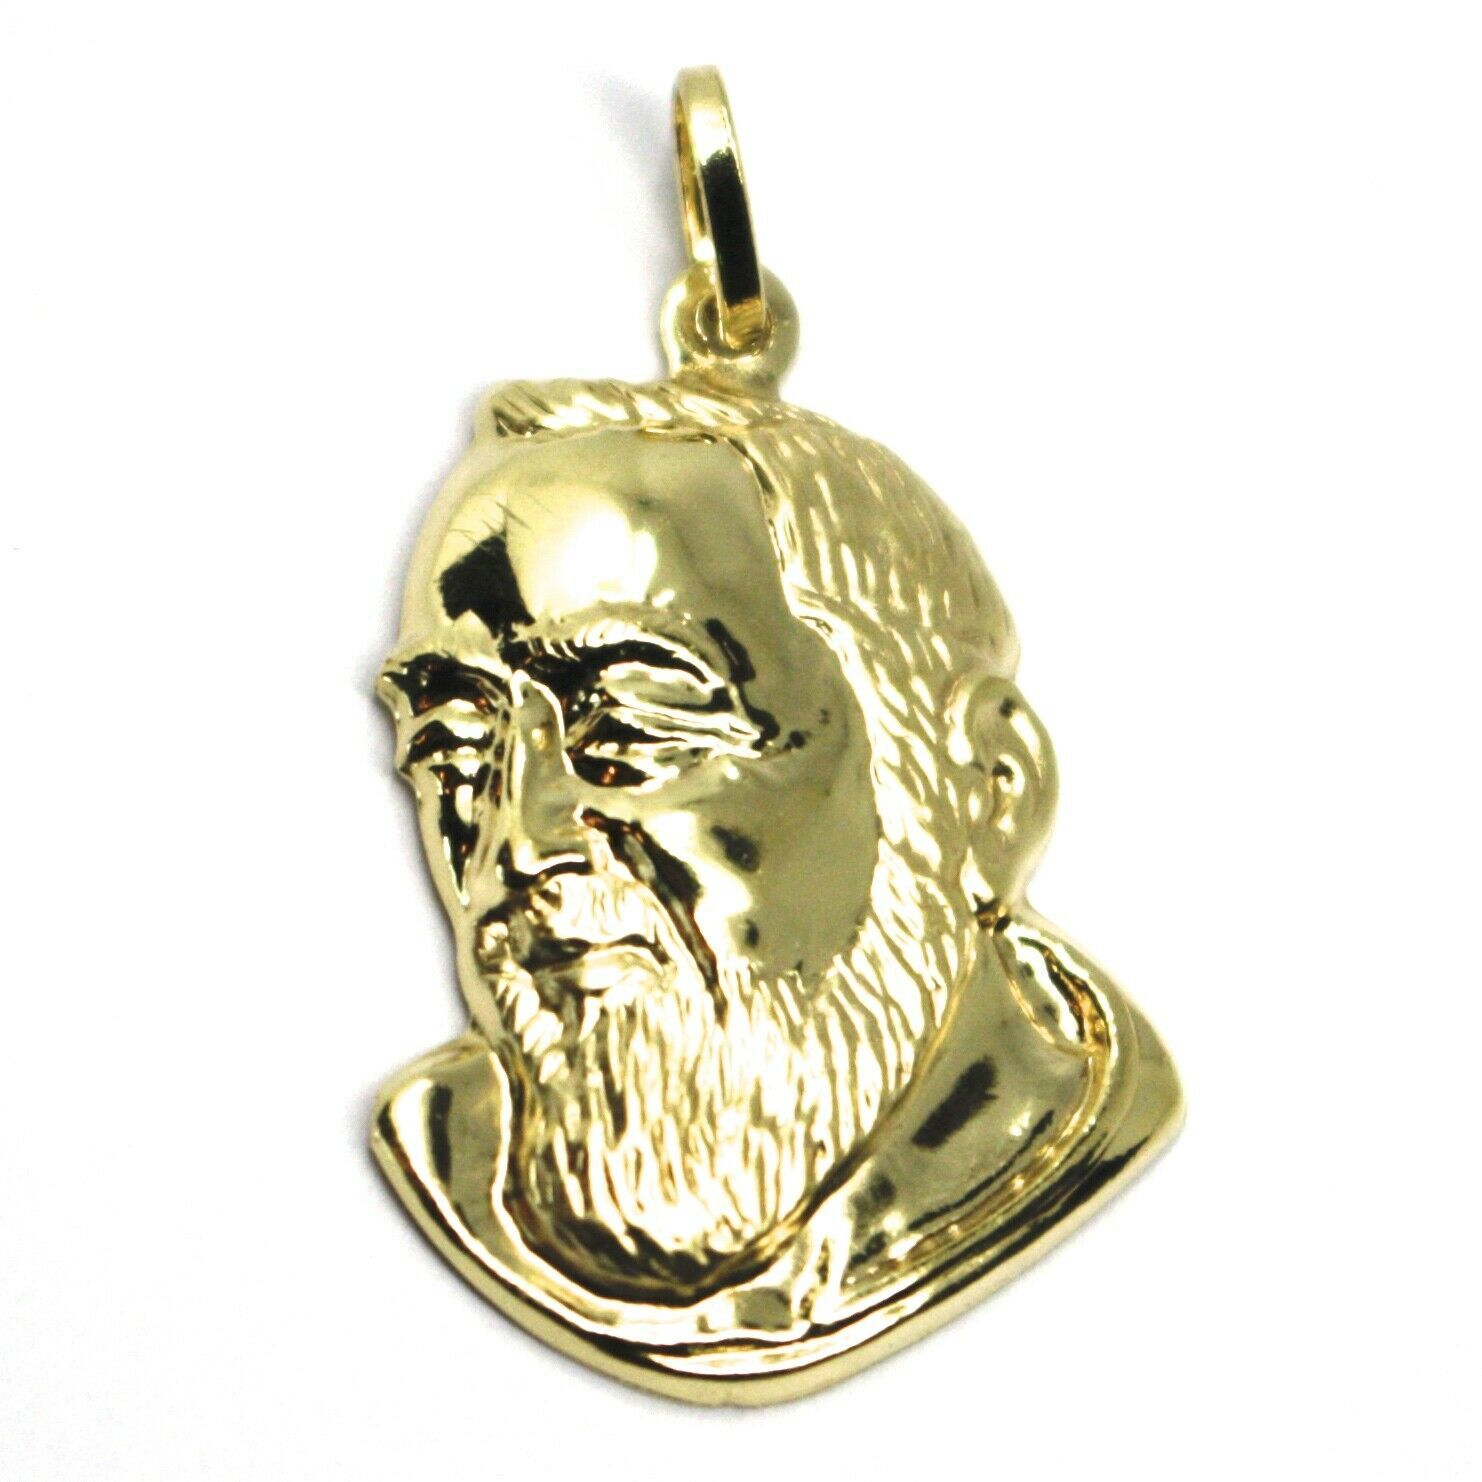 18K YELLOW GOLD PENDANT, SAINT PIO OF PIETRELCINA FACE, 29mm SATIN VERY DETAILED